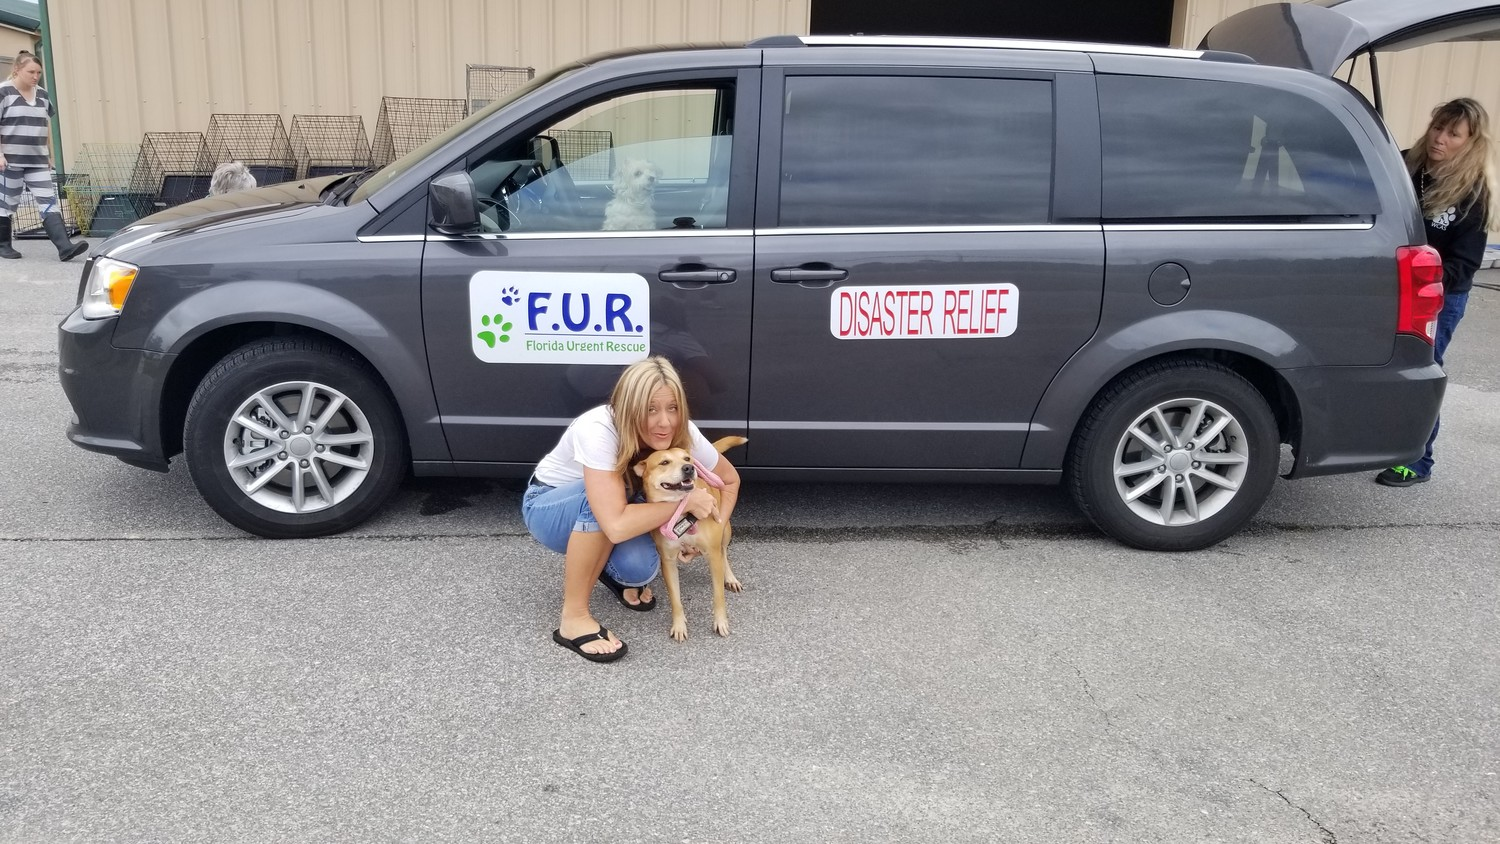 Another dog rescued from Hurricane Michael is taken in by the F.U.R. team.